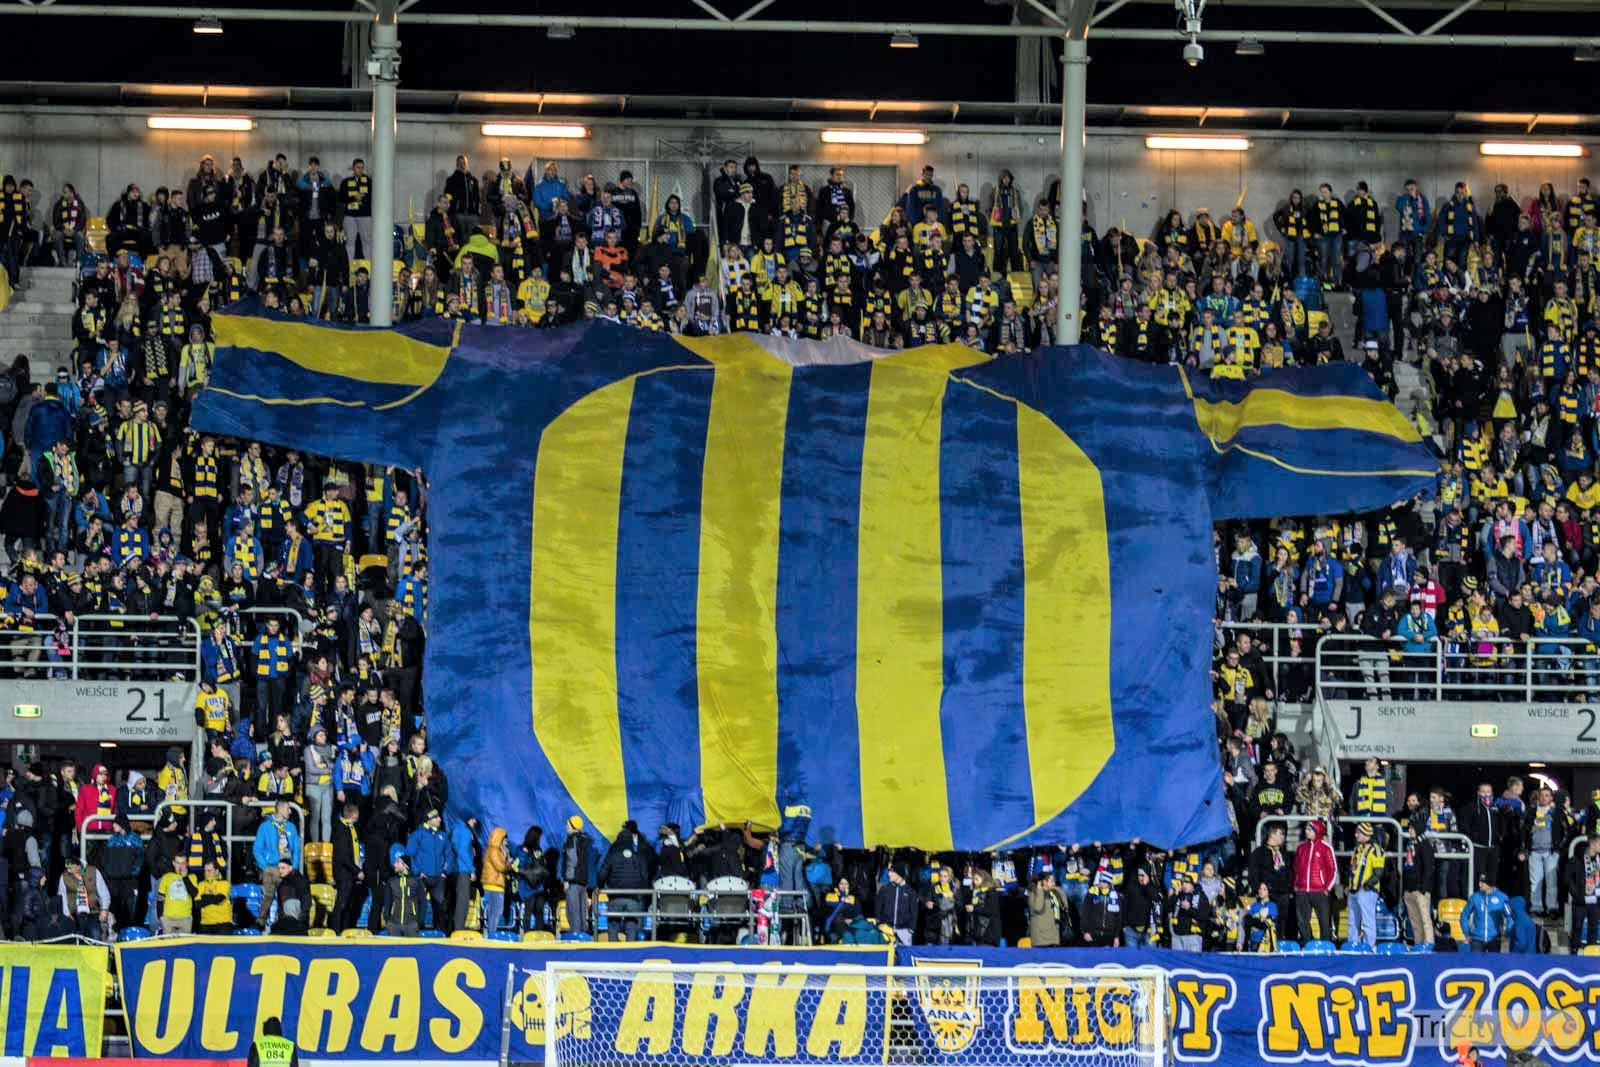 Arka Gdynia fans, Photo: Jakub Wozniak/Tricity News